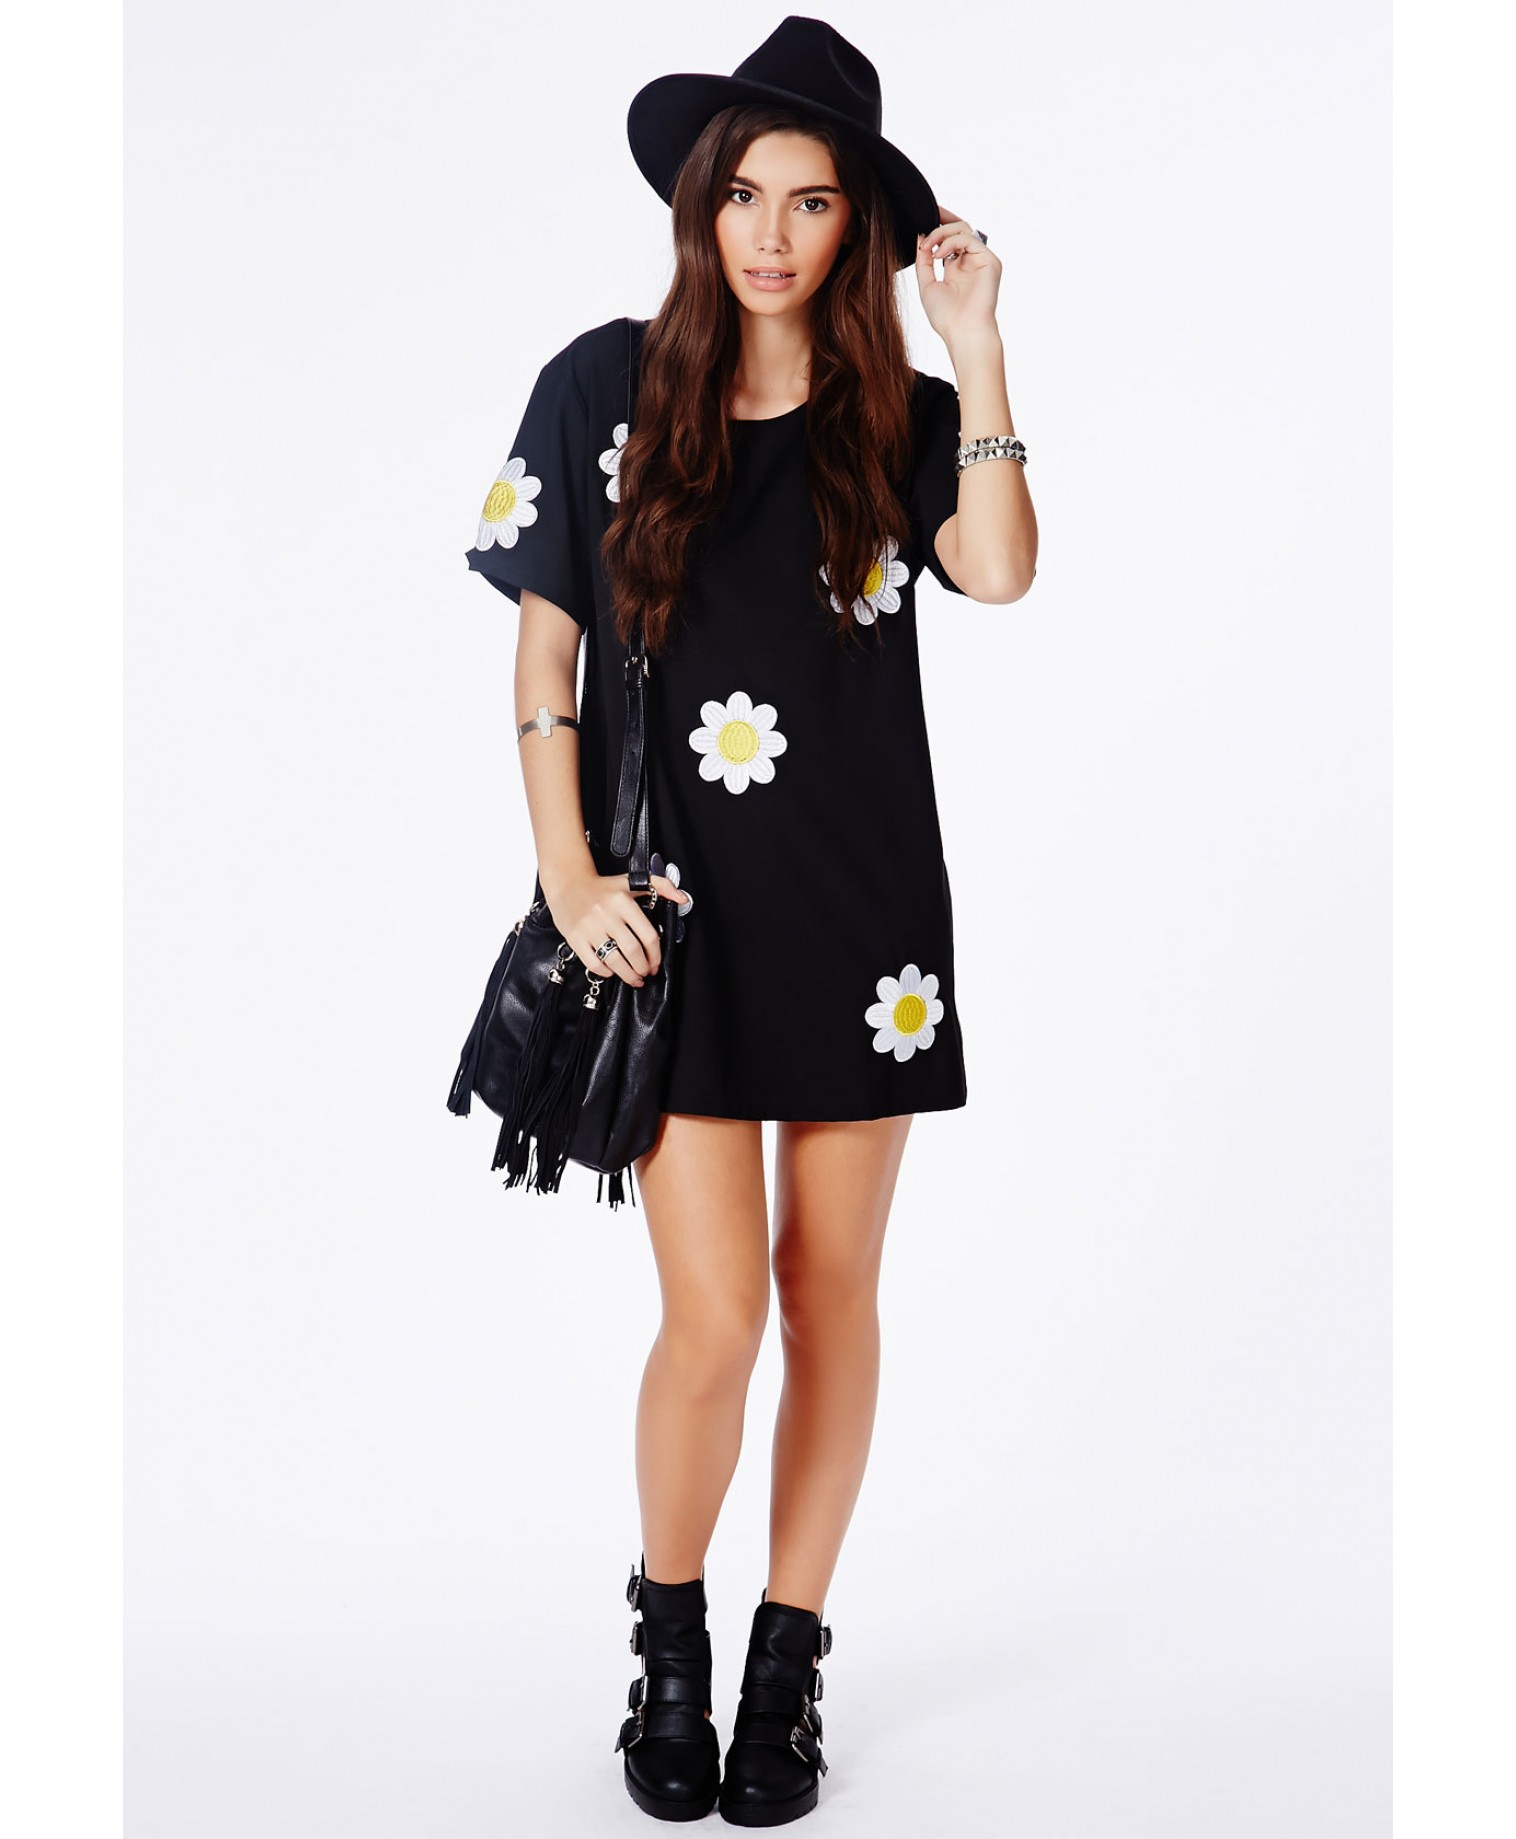 Calanta black oversized daisy shift dress 2